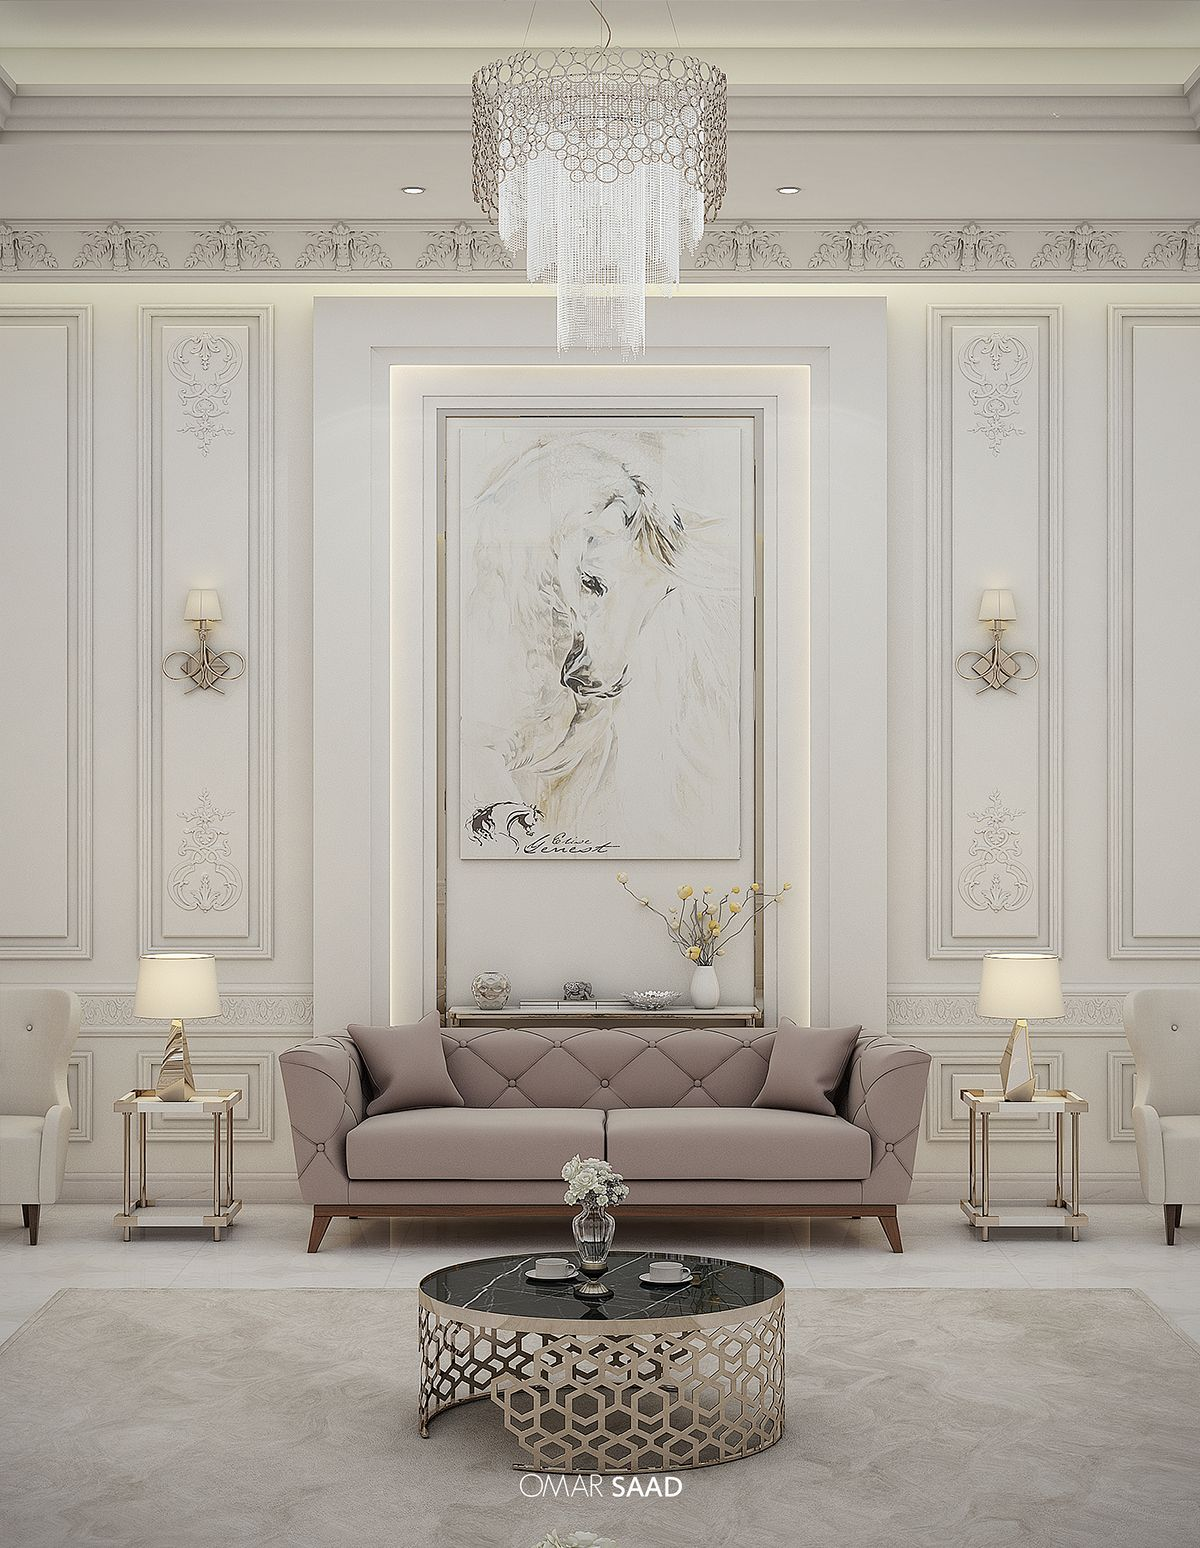 Luxury classic villa interior design on behance post for Luxury classic interior design